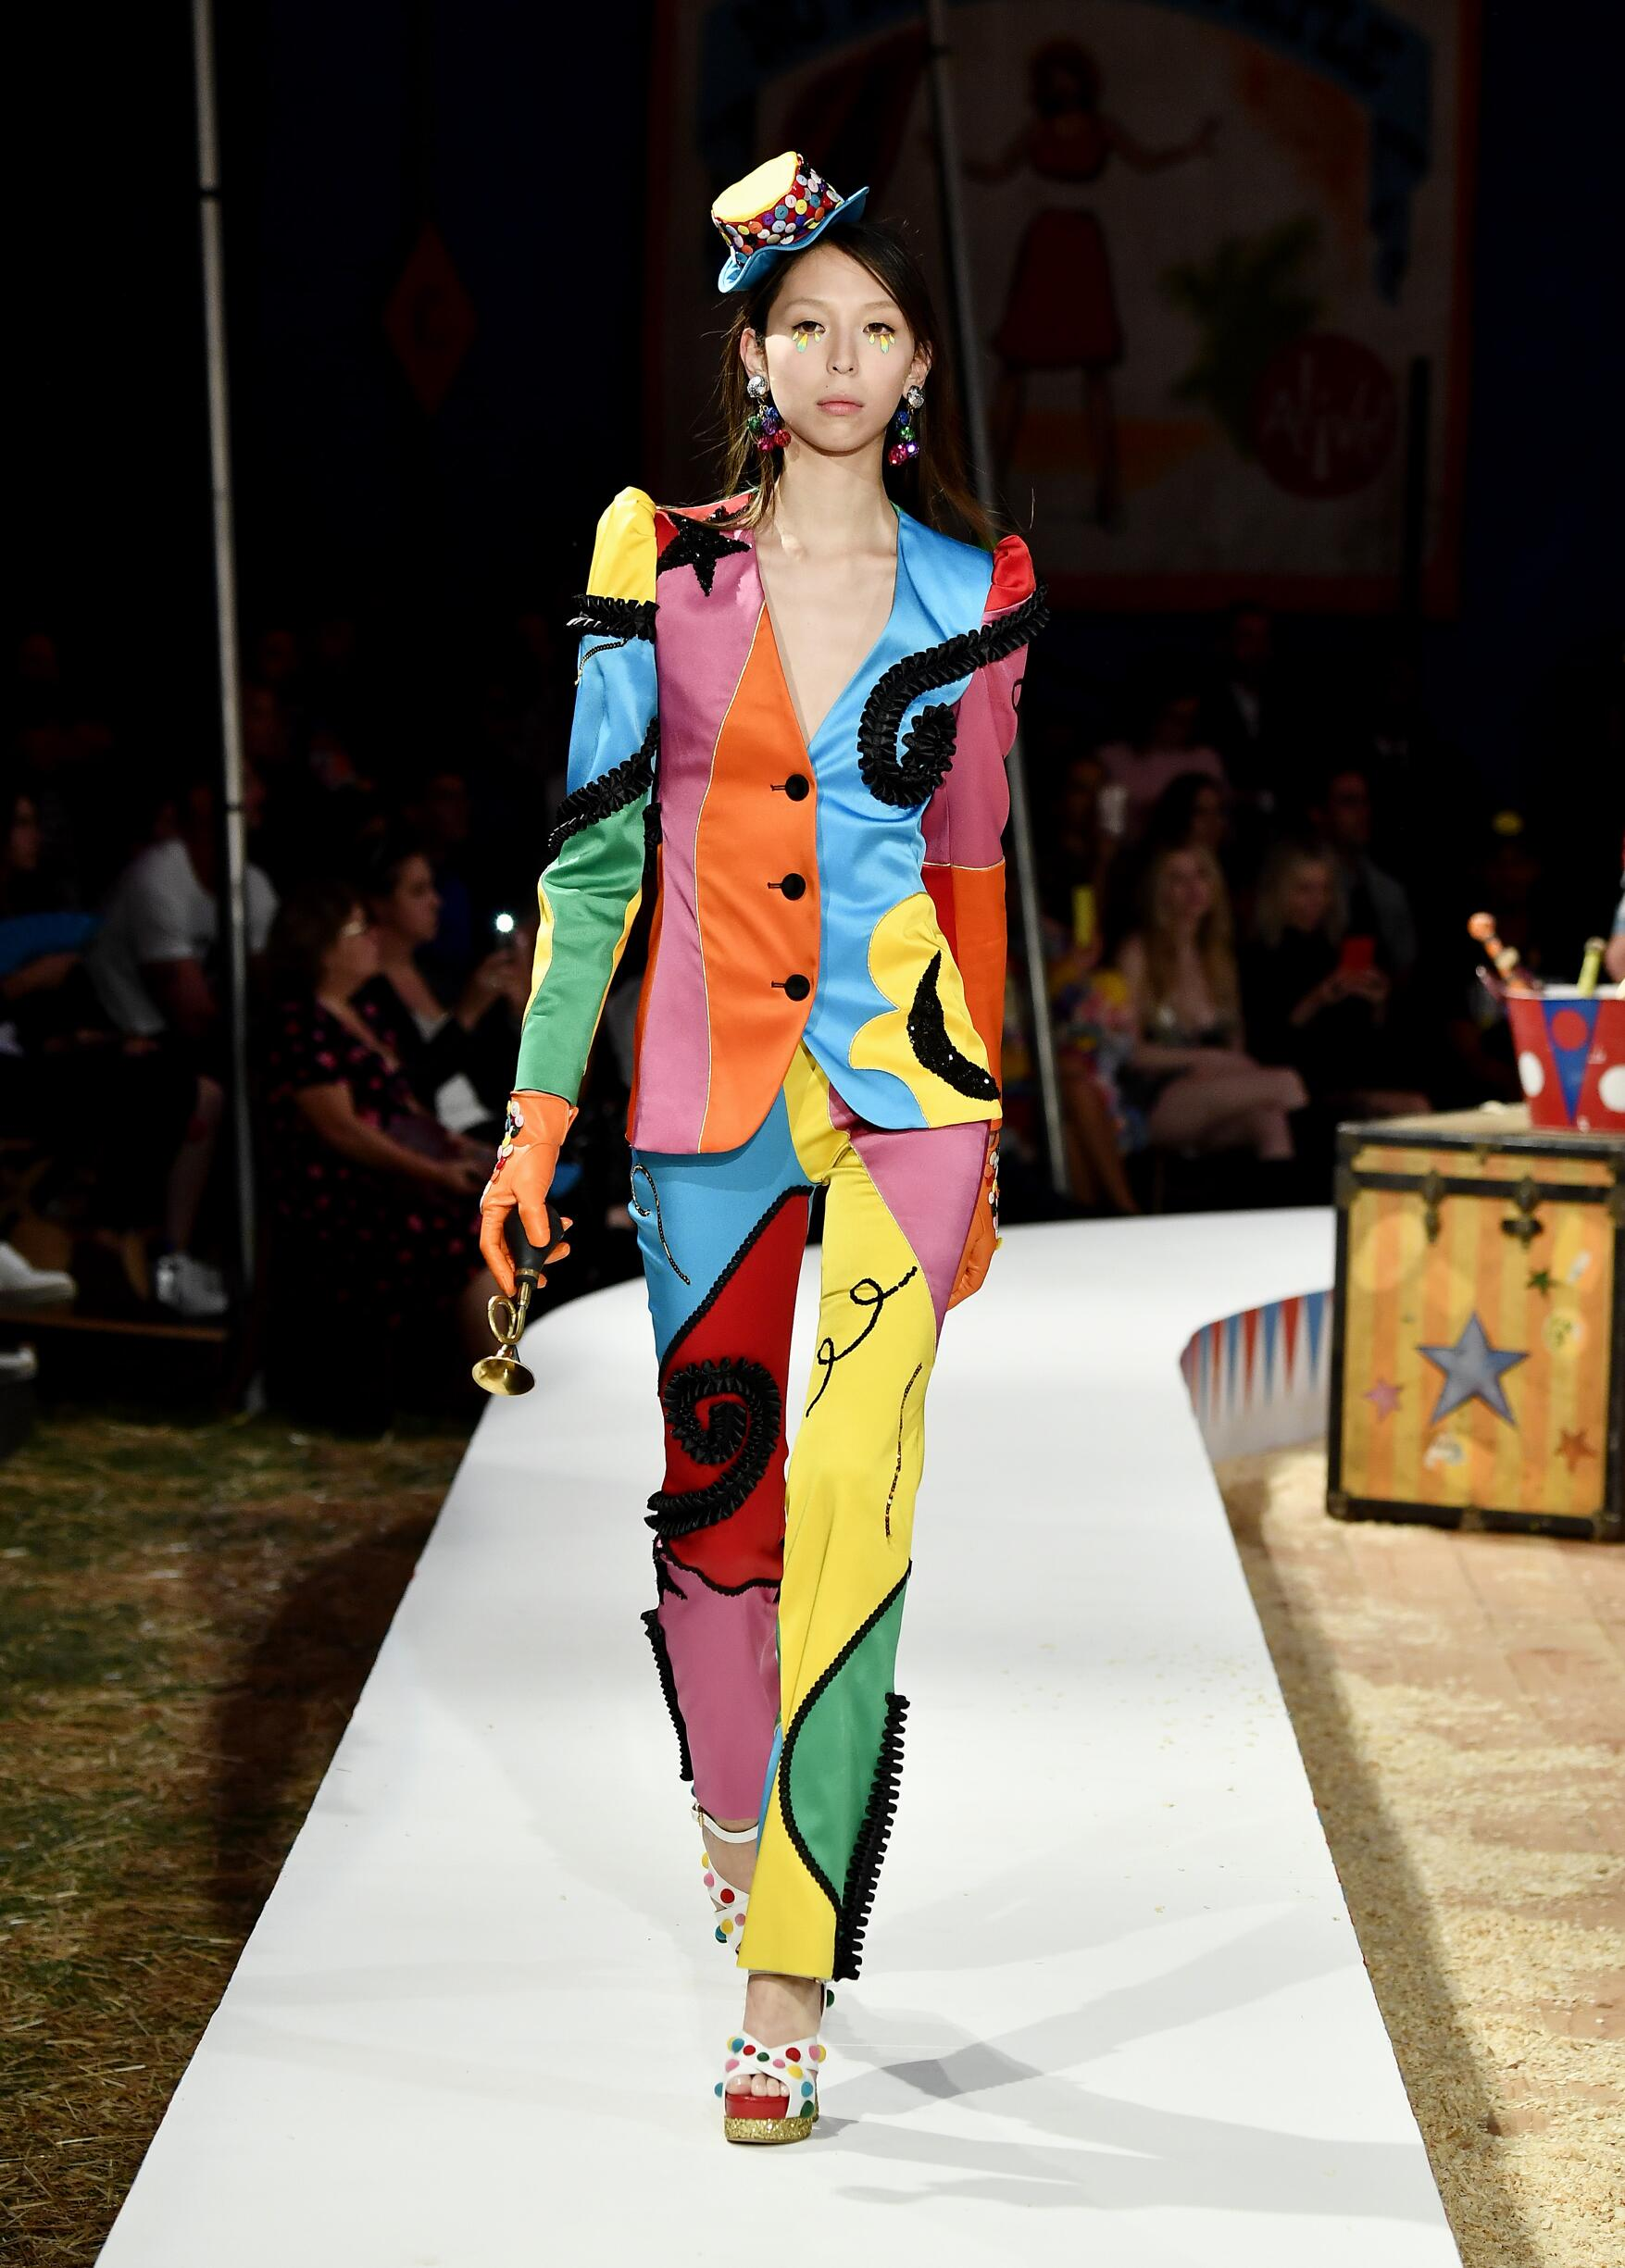 Moschino Spring Summer 2019 Menswear and Women's Resort Collection Look 70 Los Angeles